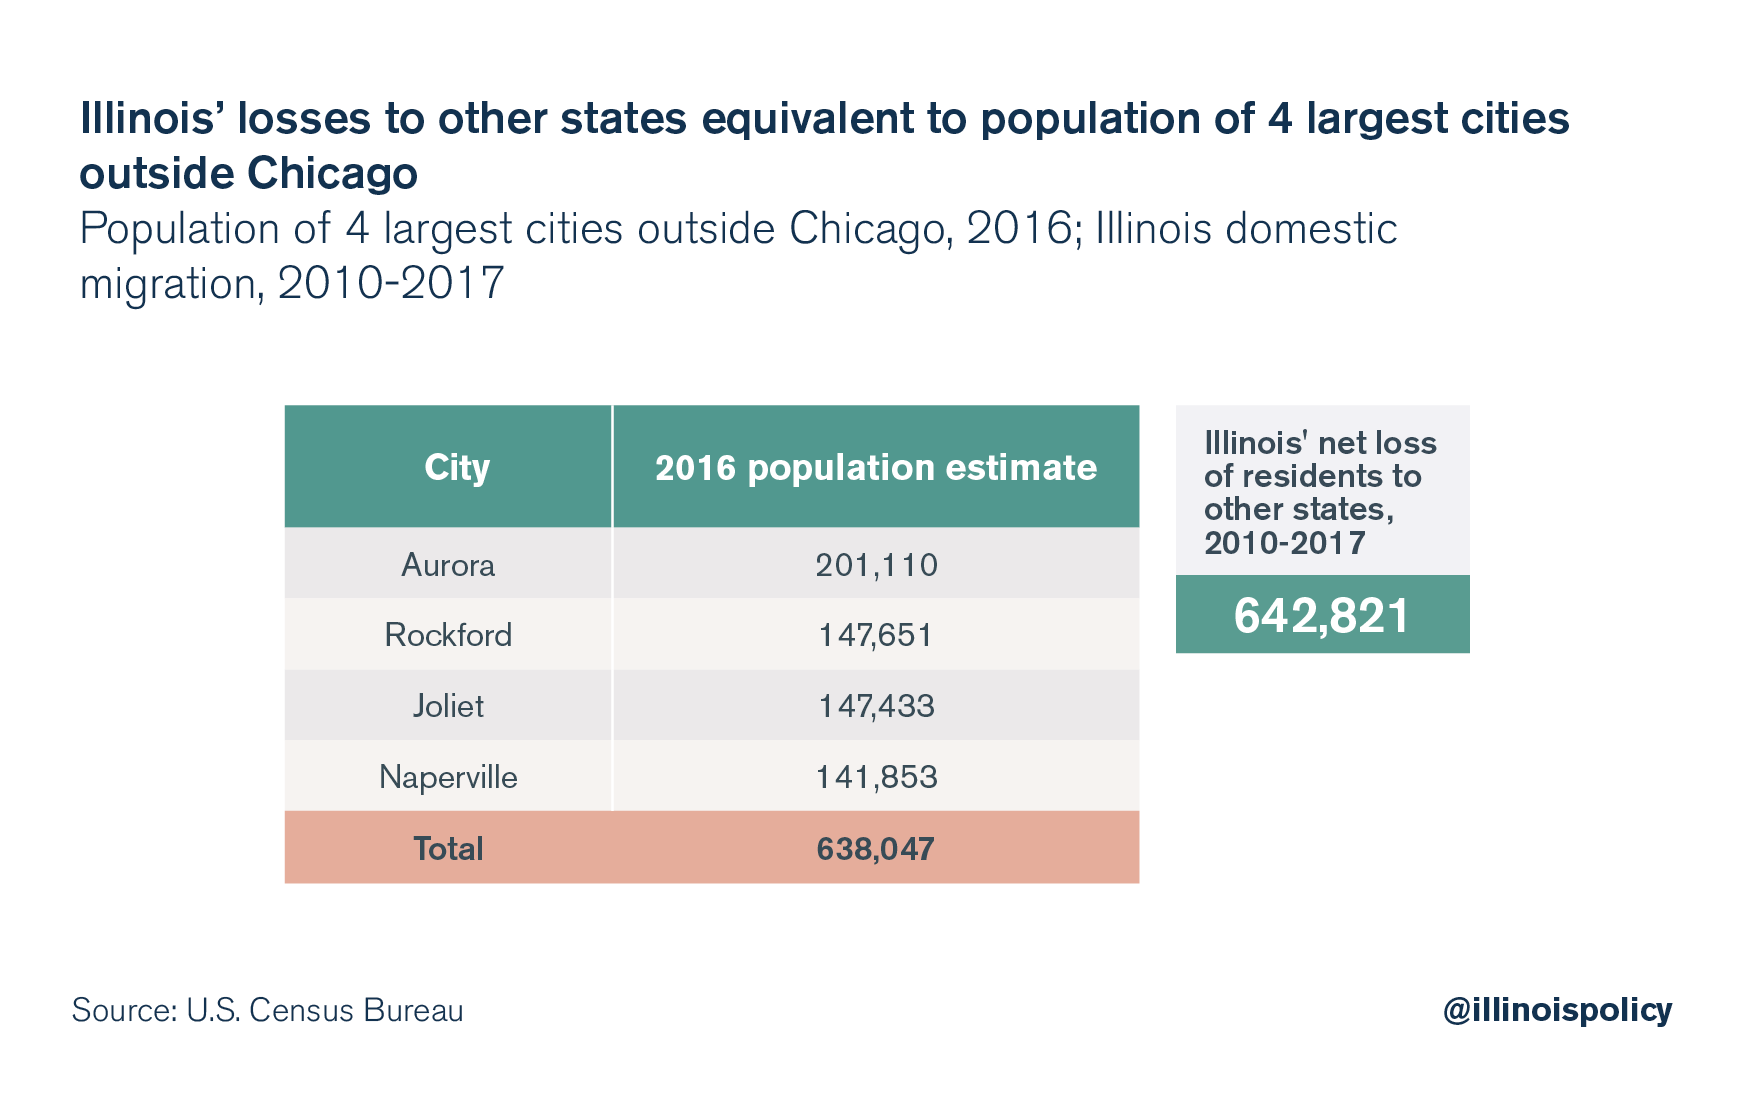 Illinois' losses to other states equivalent to population of 4 largest cities outside Chicago